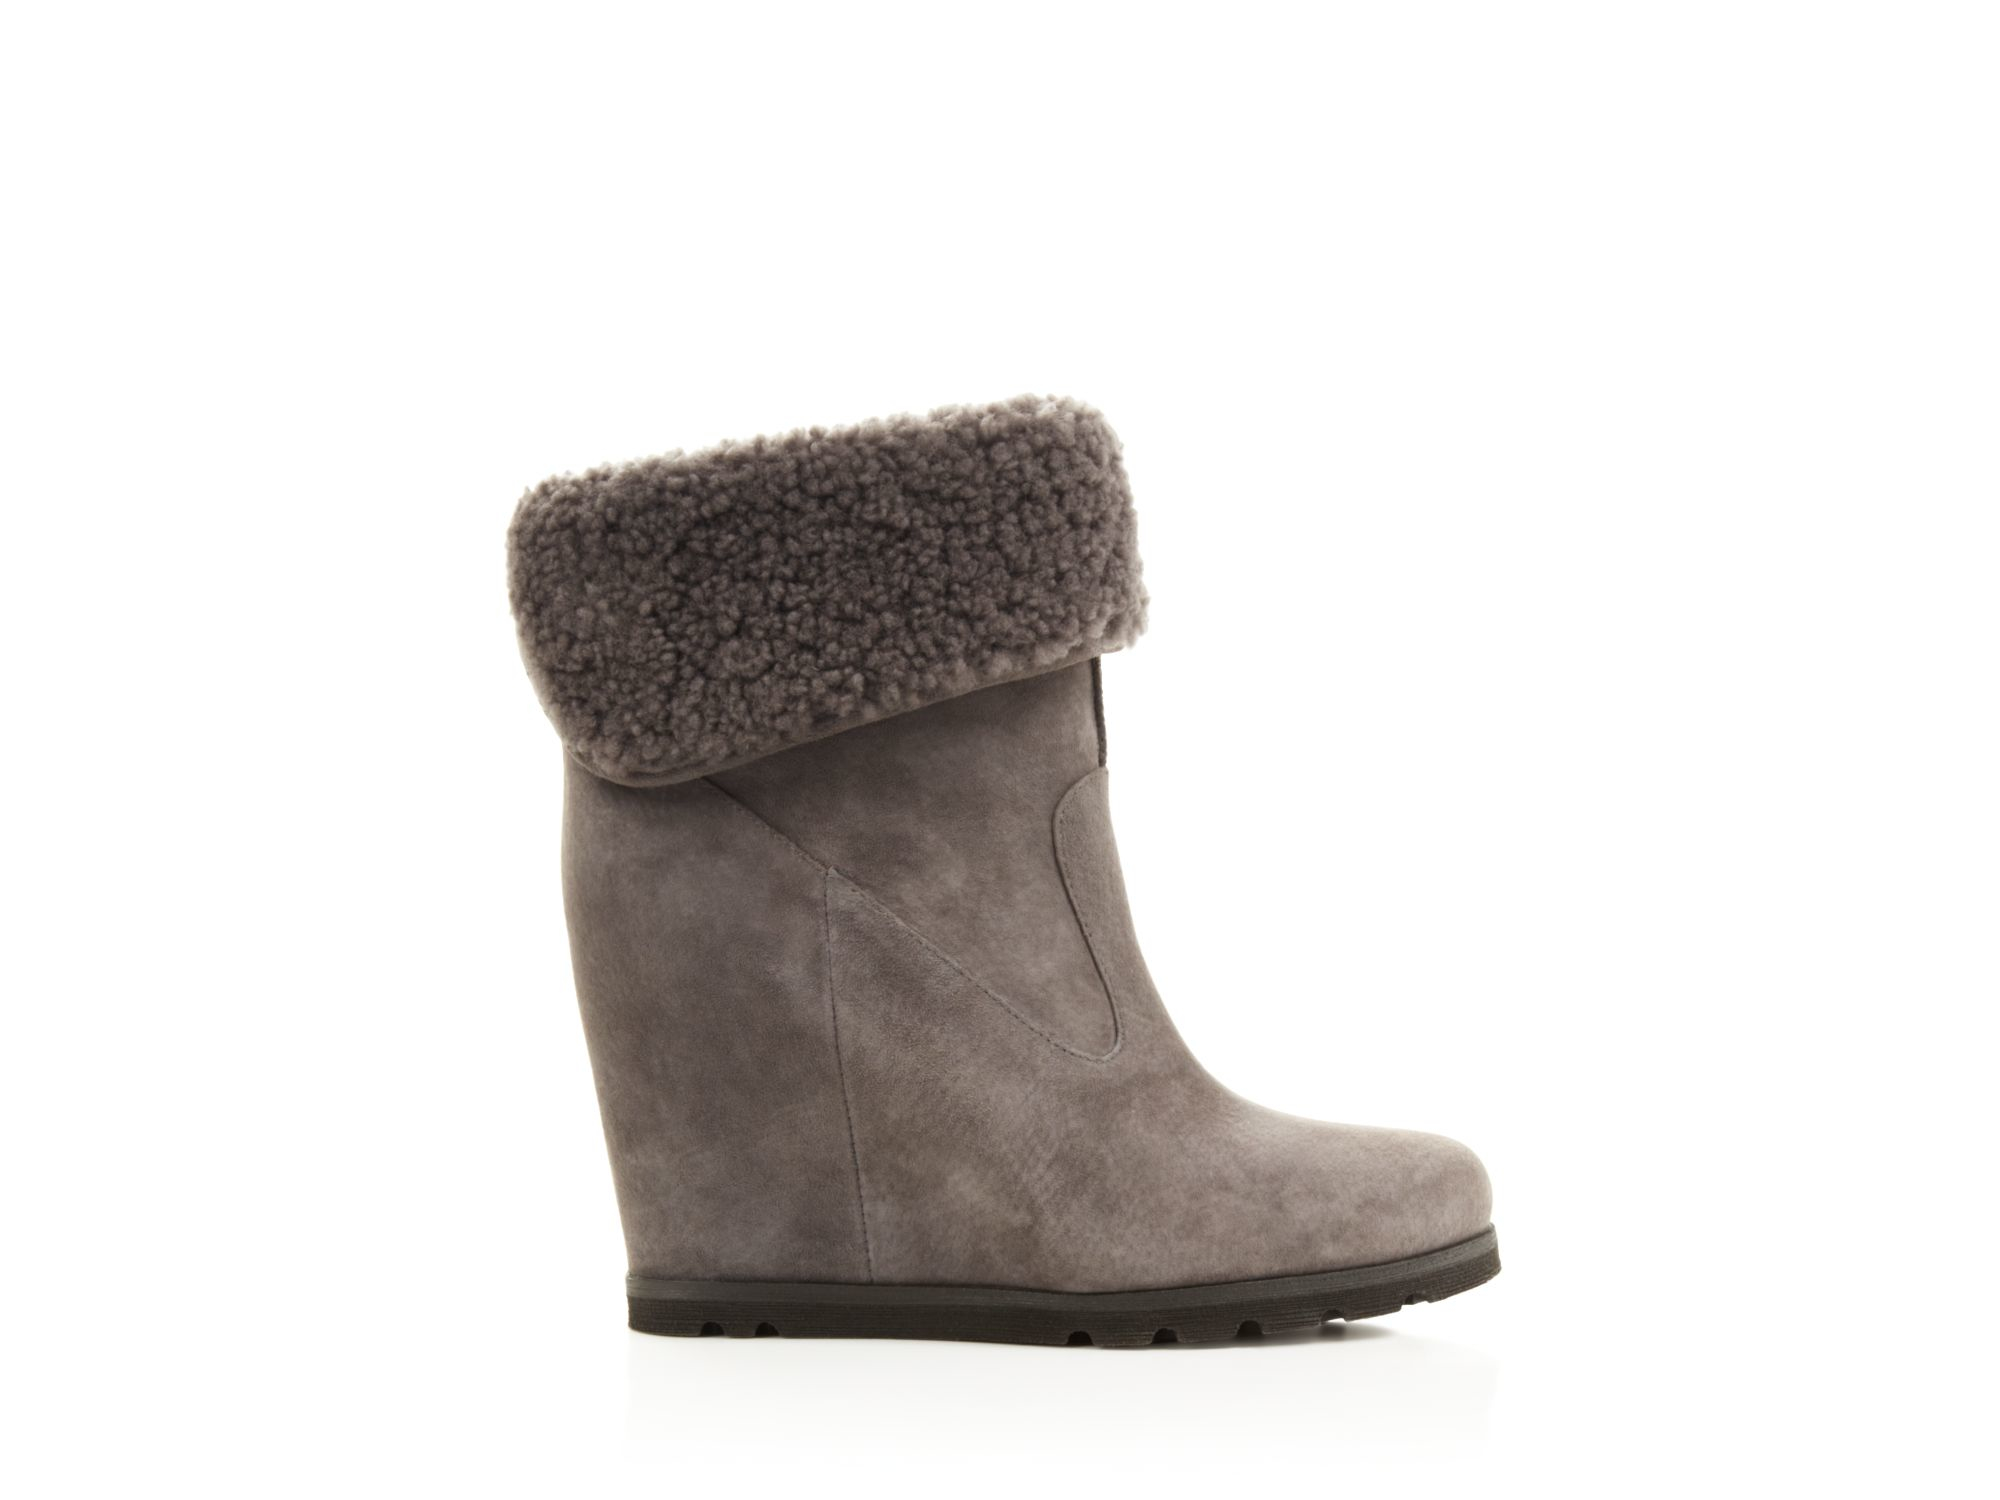 Lyst Ugg Ugg 174 Australia Kyra Shearling Wedge Booties In Gray